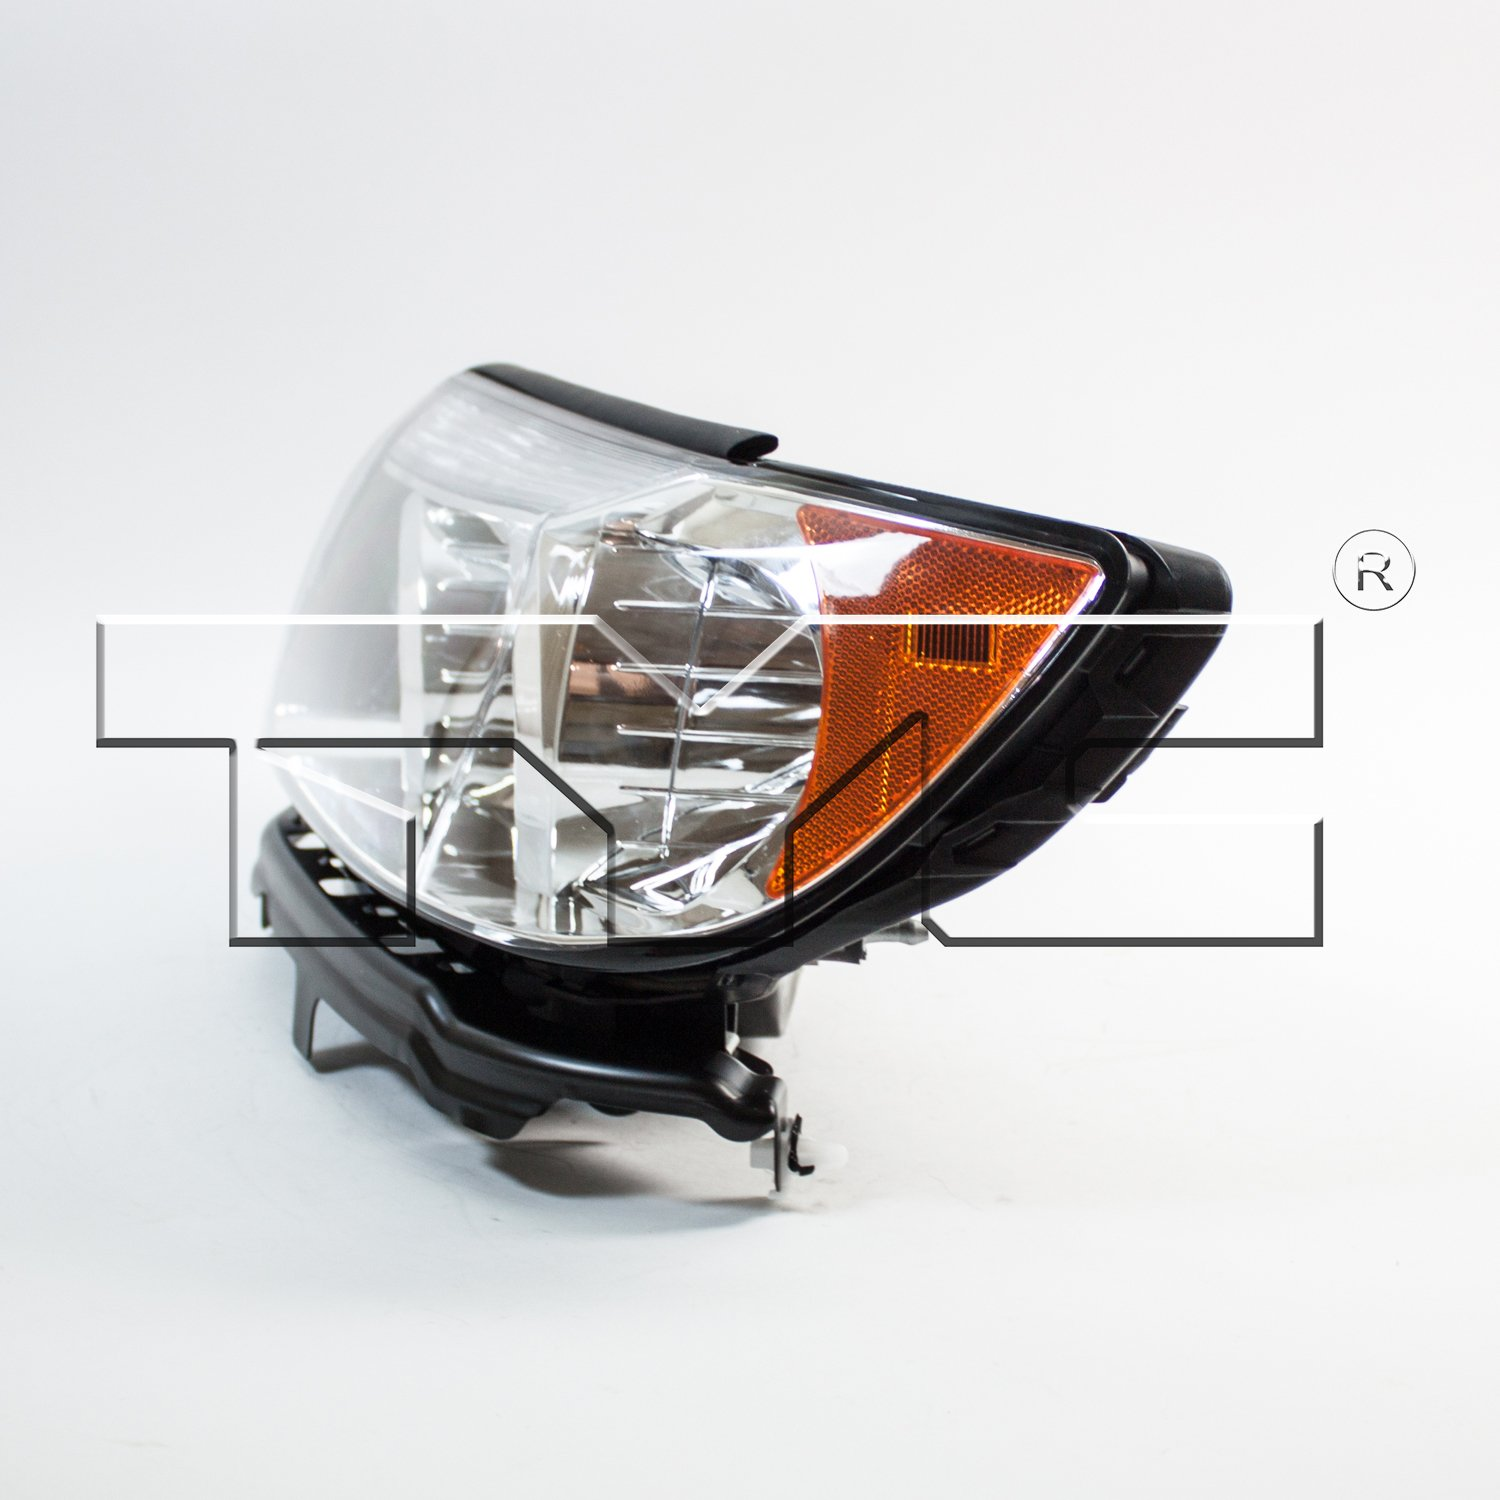 2007 Subaru Forester Headlight Embly Ty 20 6784 00 1